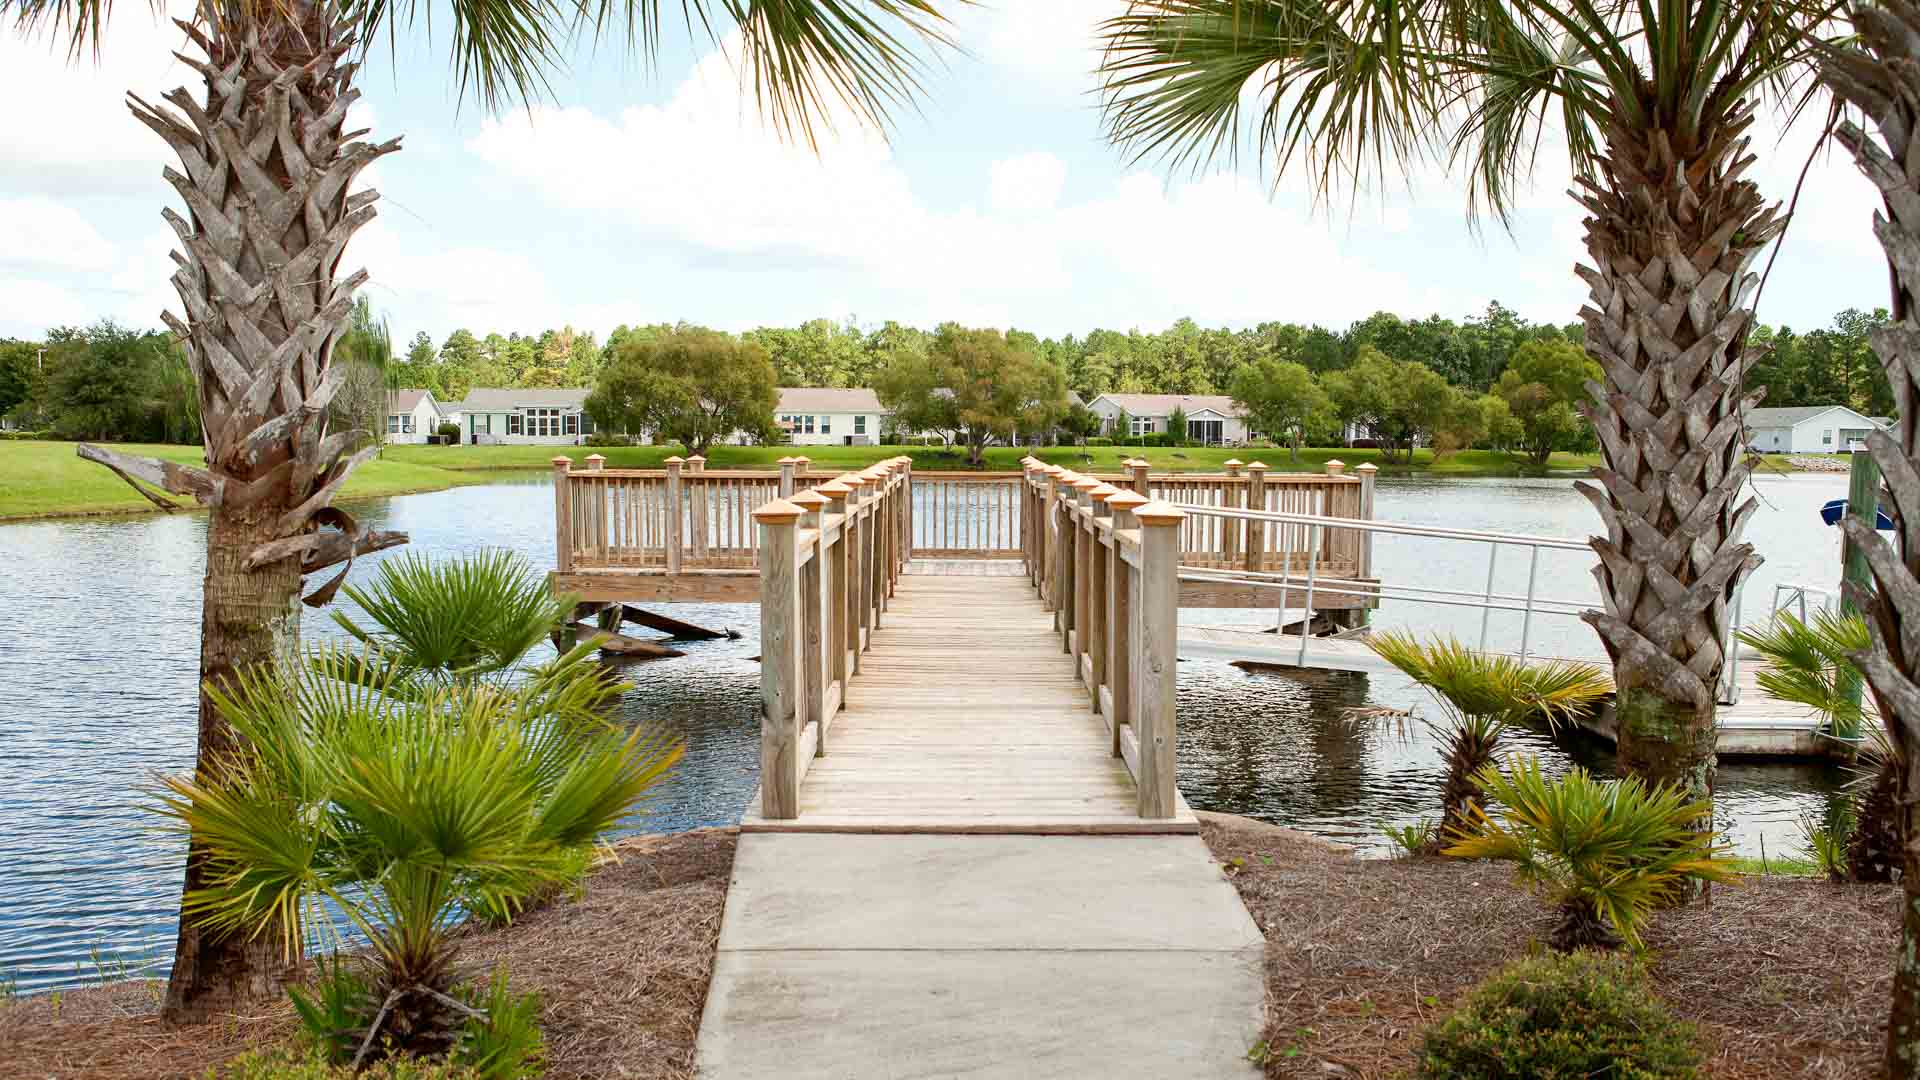 Lakeside Crossing 55+ Manufactured Homes Community Fishing Pier and Boat Dock in Conway, SC